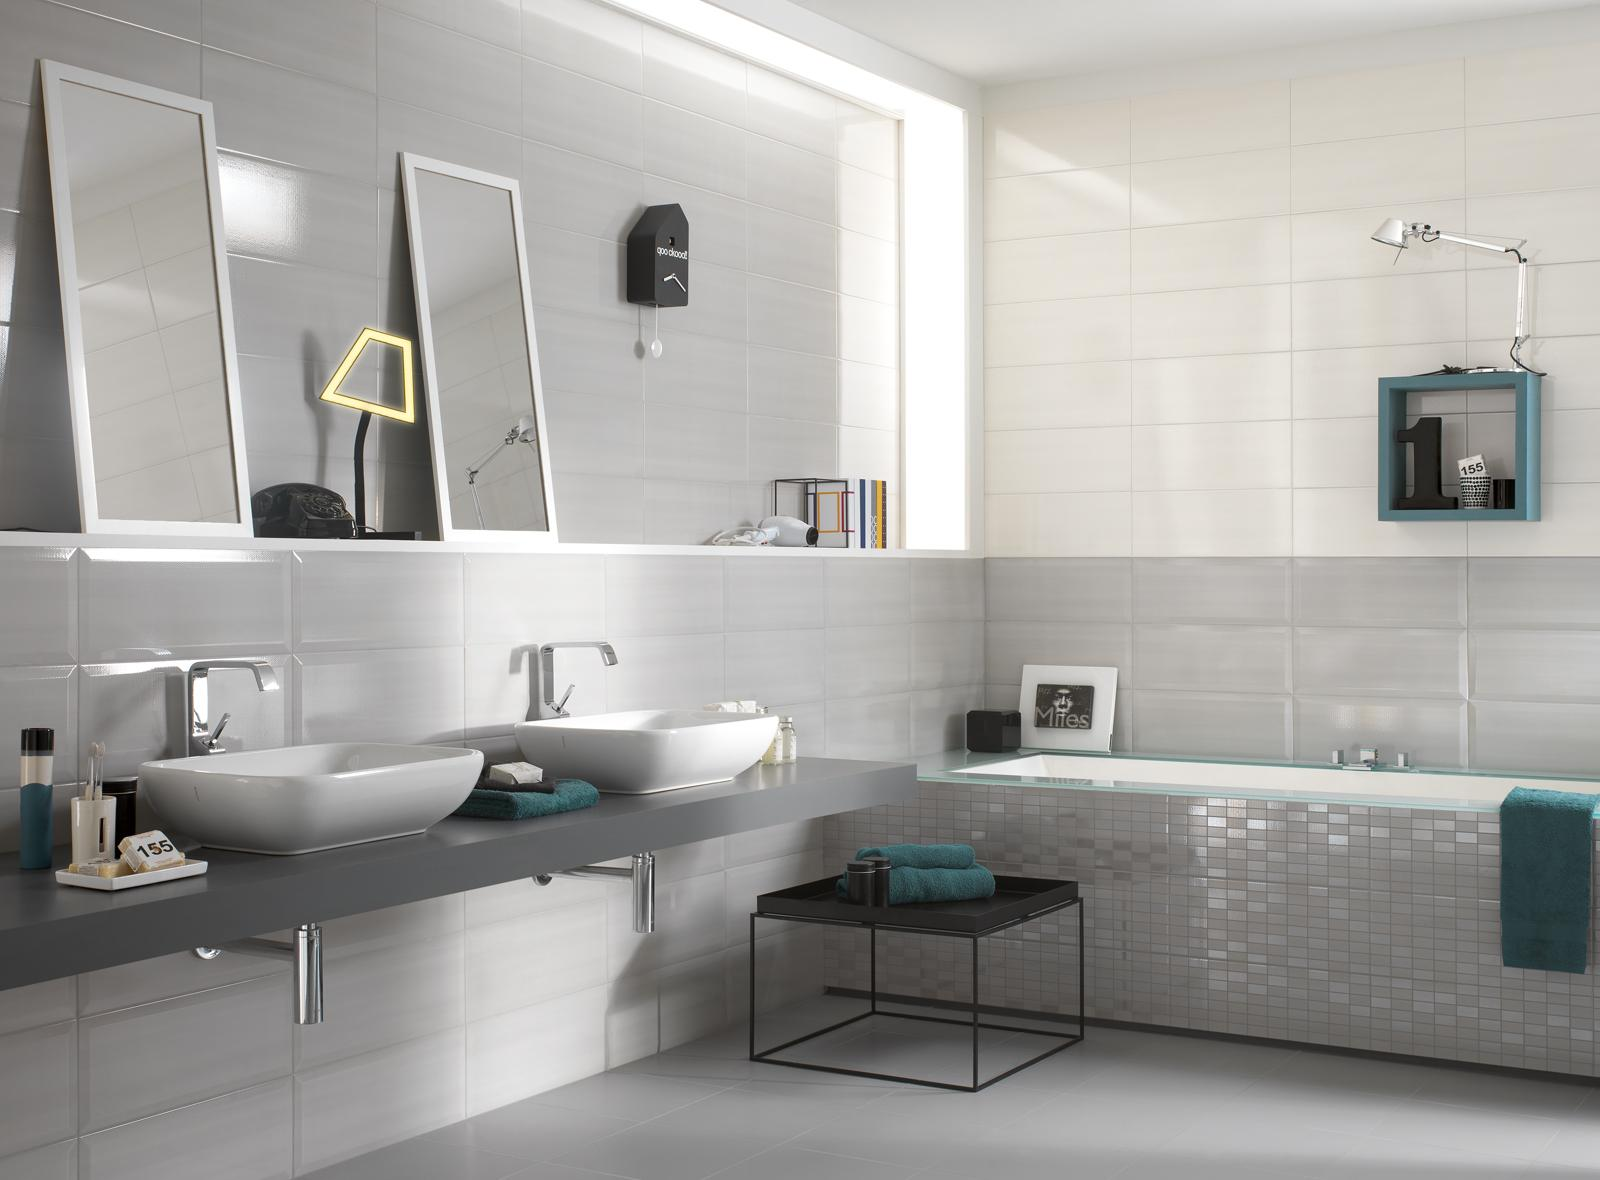 Nuance - Ceramic bathroom covering | Marazzi